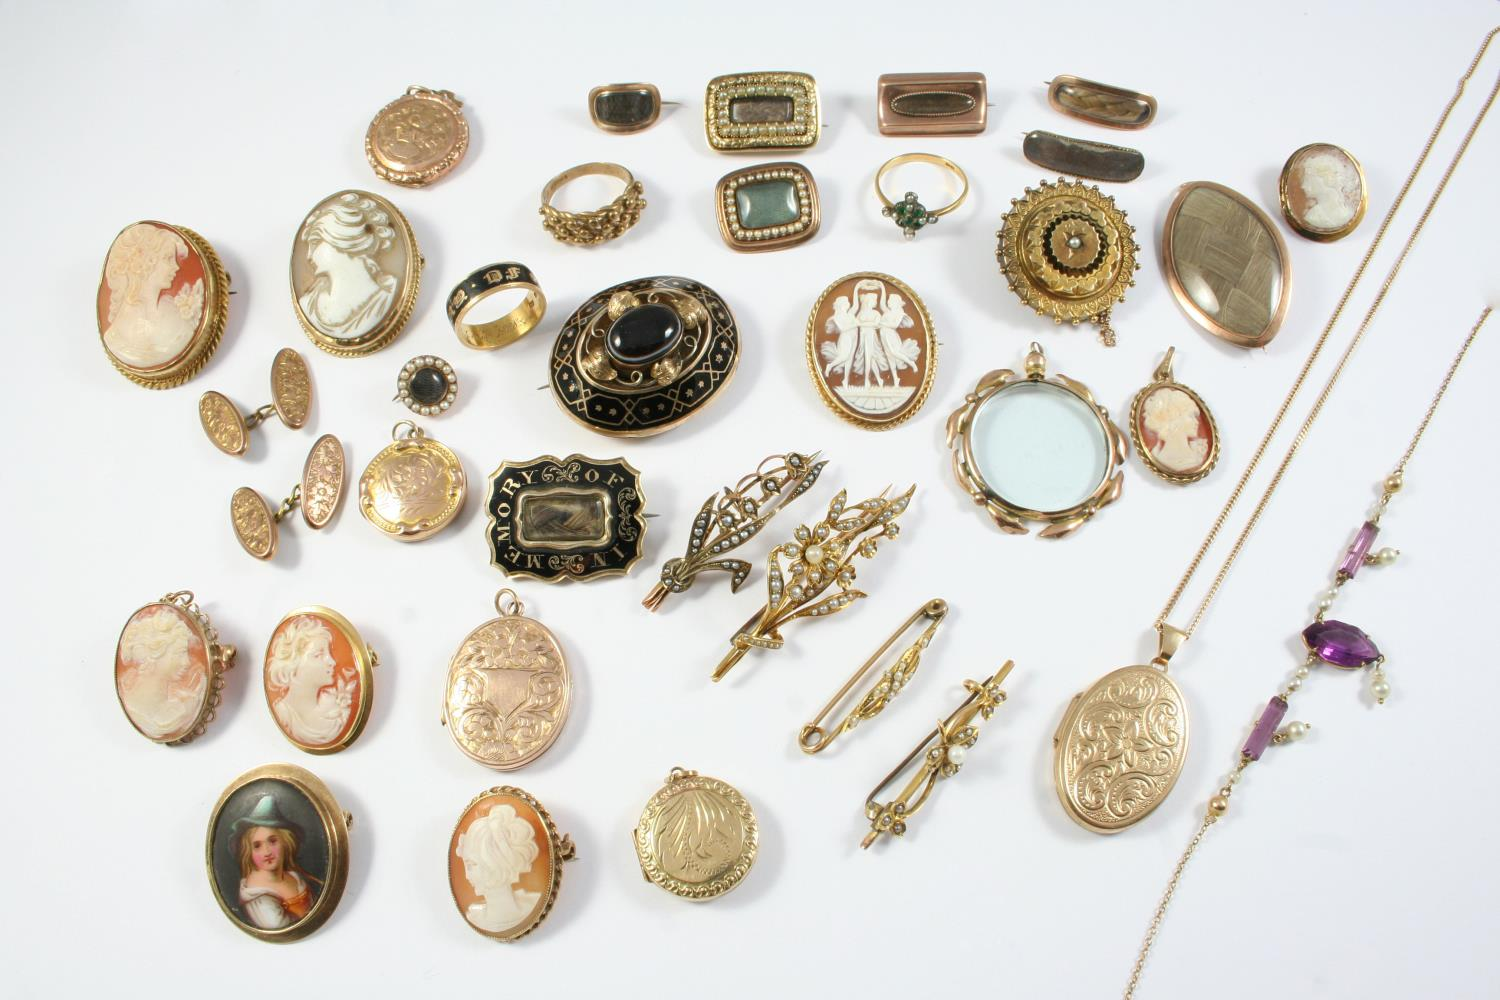 A QUANTITY OF JEWELLERY including a Victorian black enamel and gold mourning ring, a Victorian black